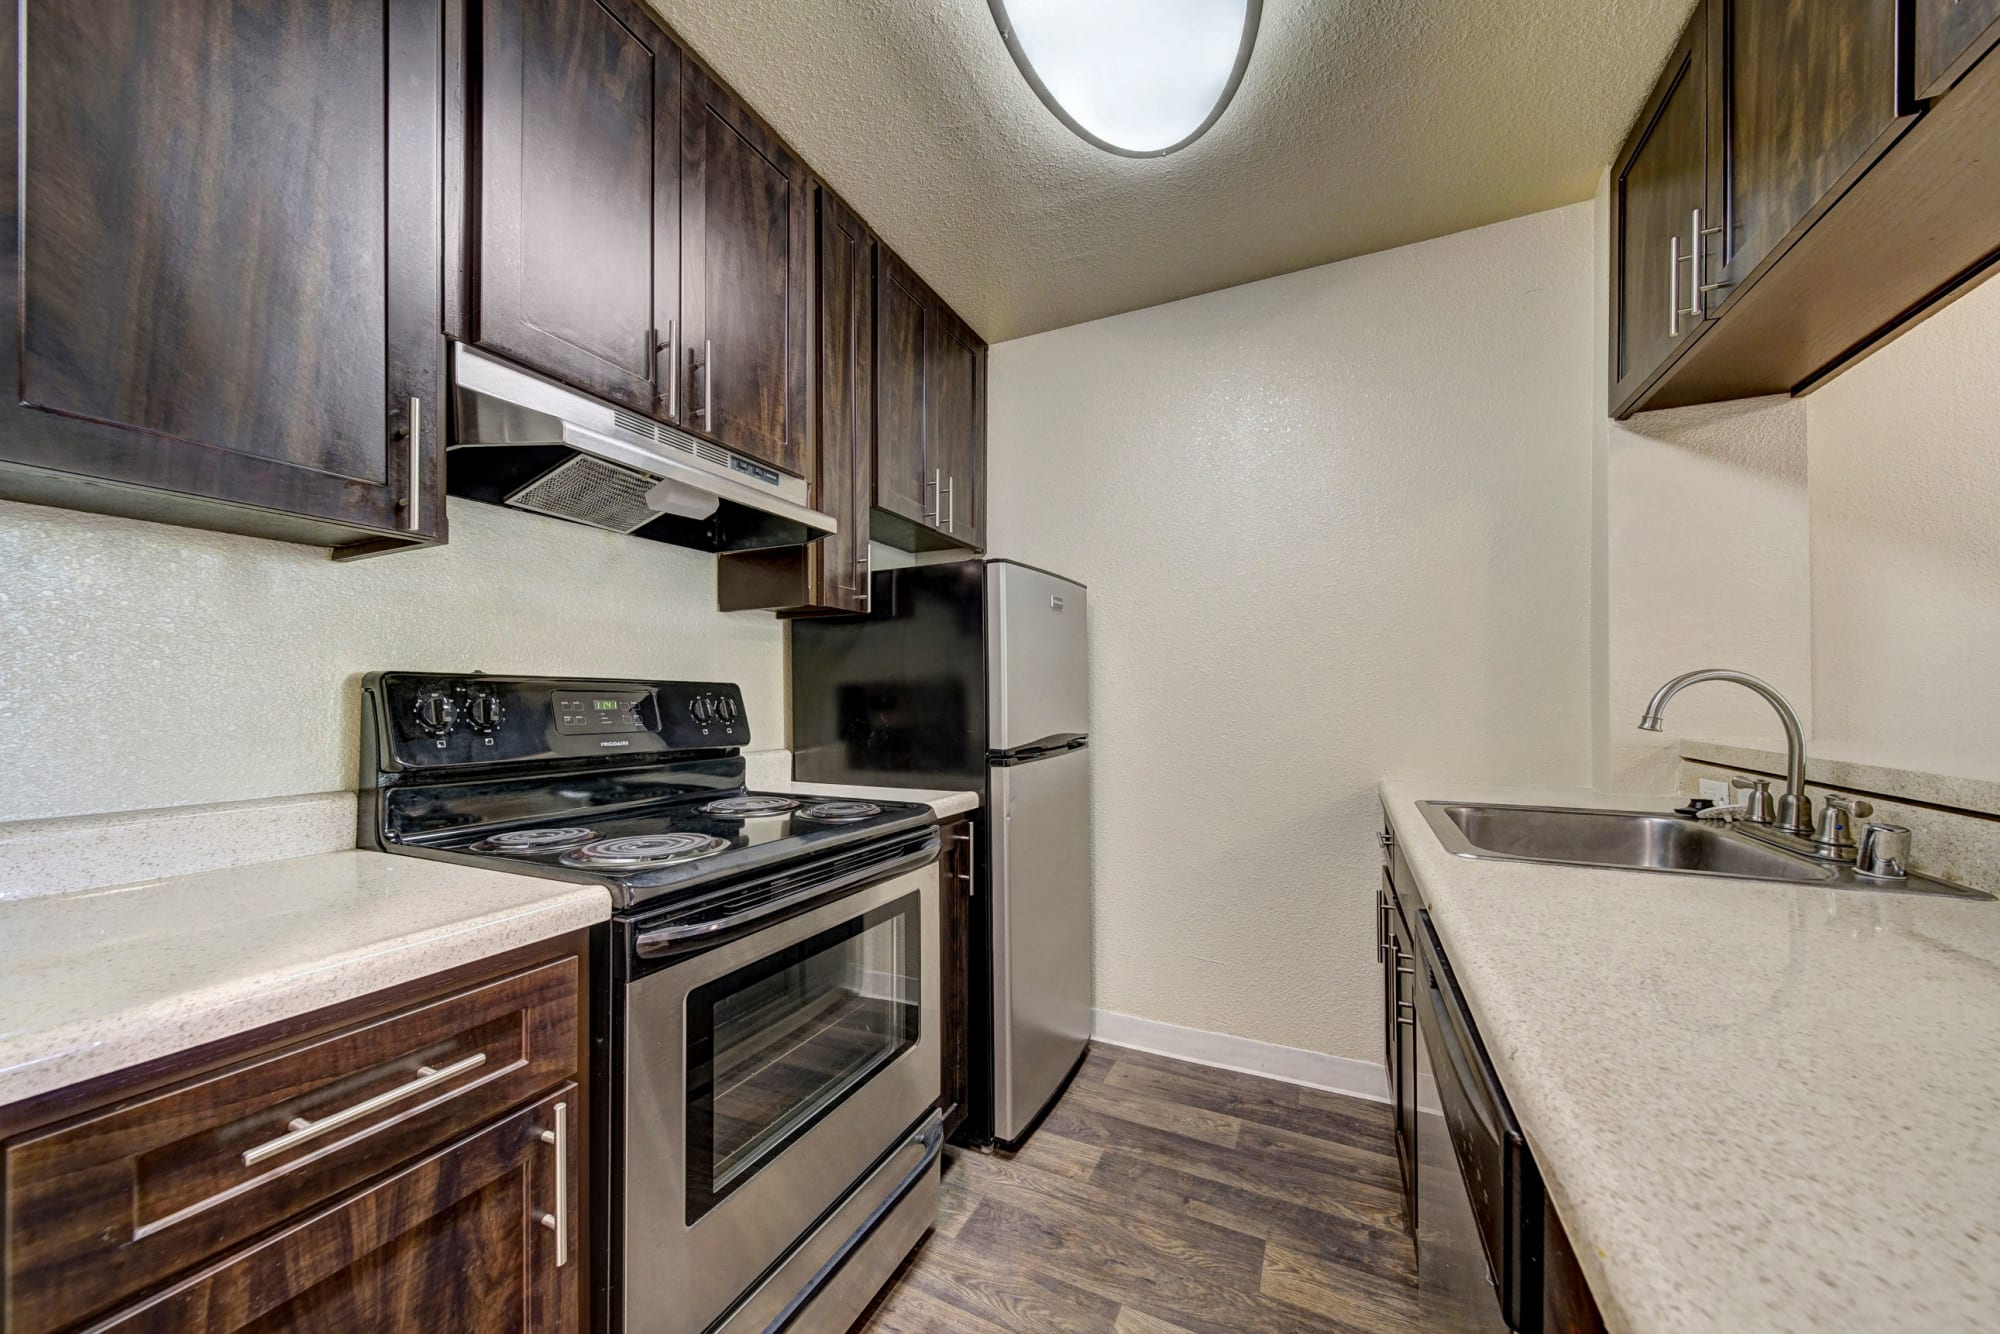 The Timbers Apartments offers a fully equipped kitchen - view of renovated brown kitchen with stainless steel appliances in Hayward, CA